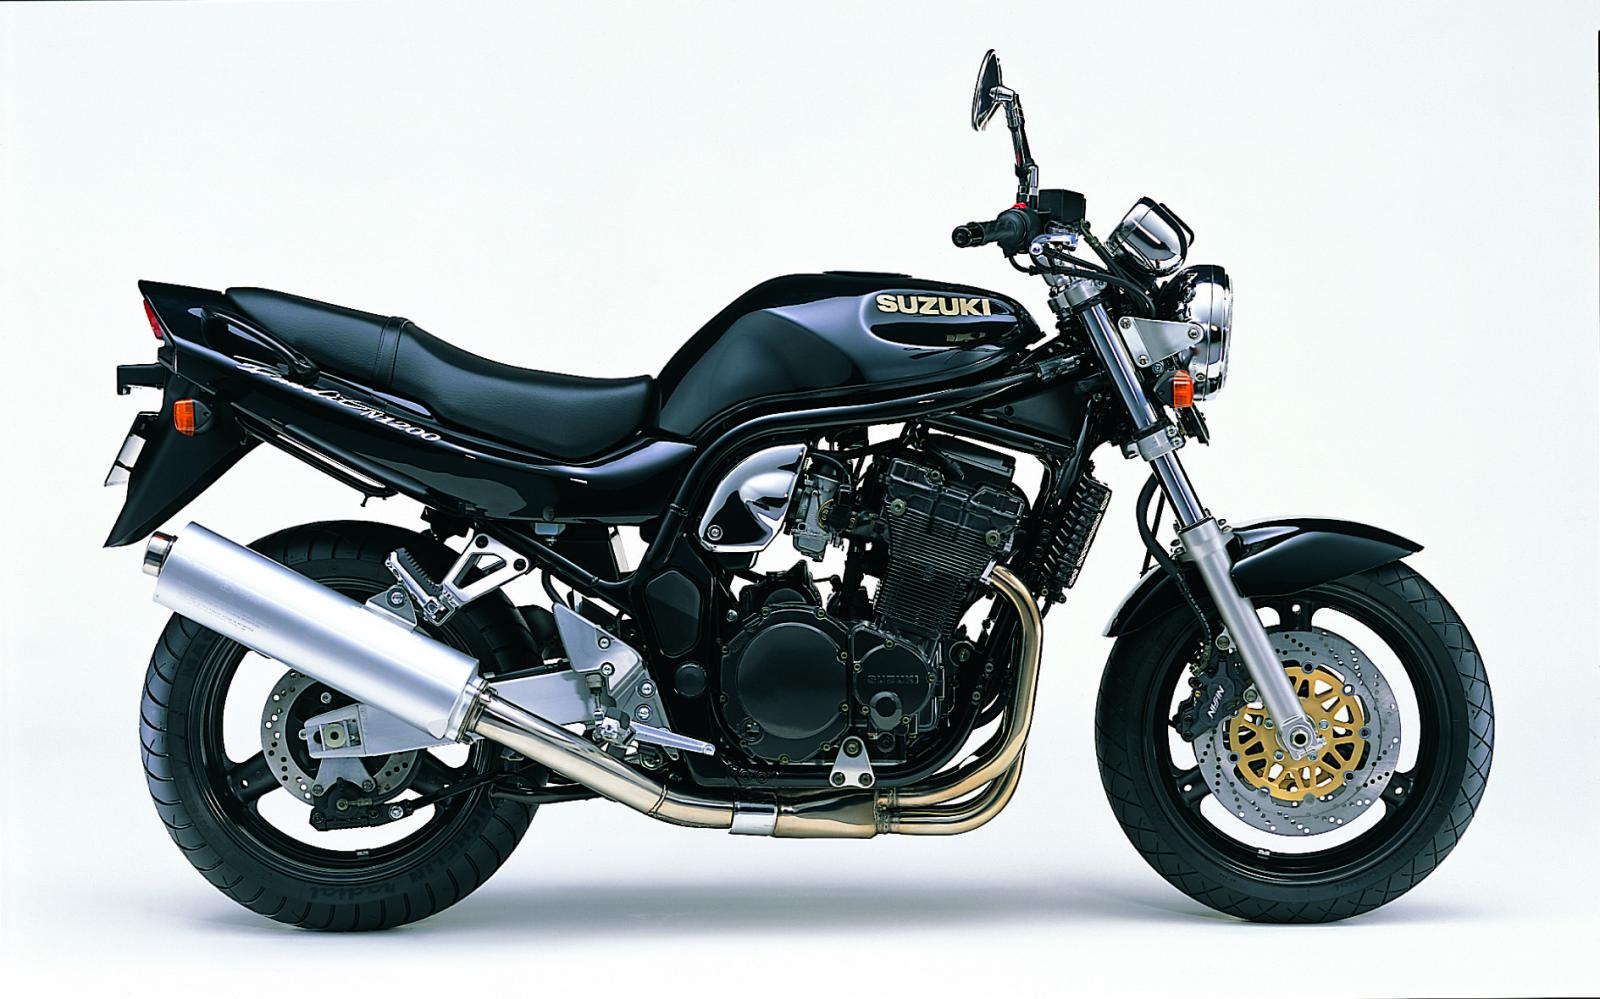 suzuki suzuki bandit 1200 n moto zombdrive com. Black Bedroom Furniture Sets. Home Design Ideas